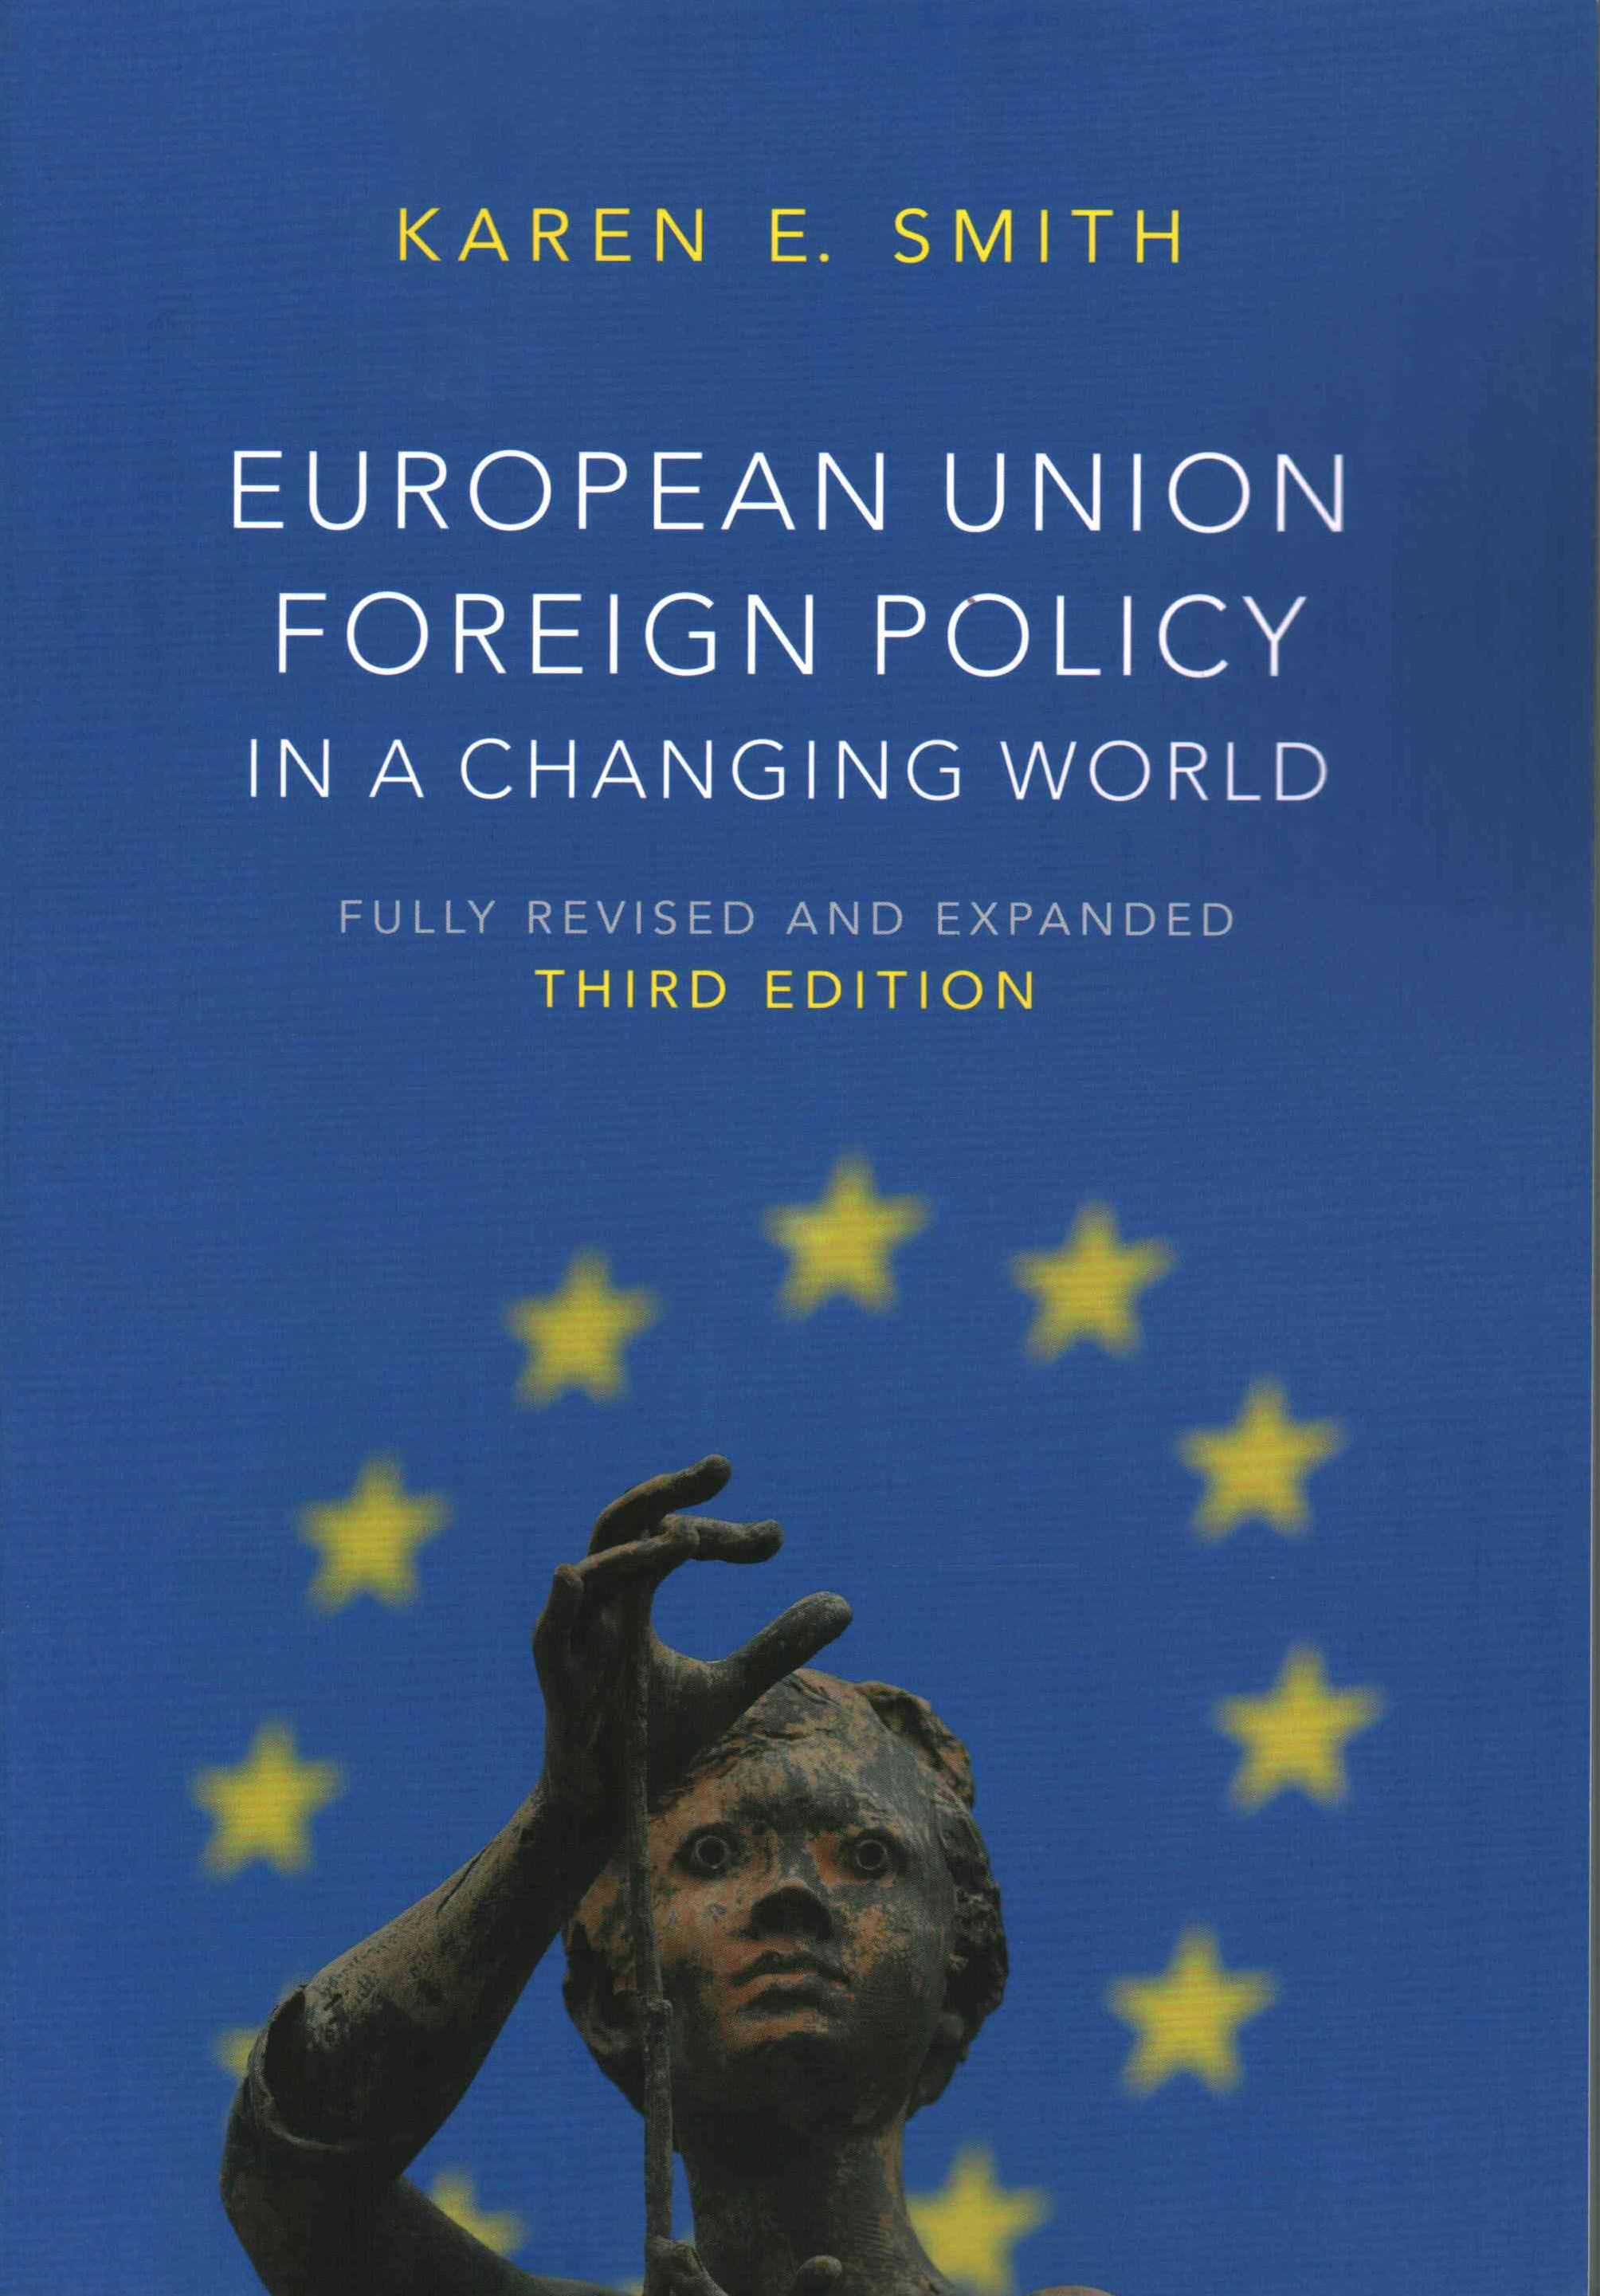 European Union Foreign Policy in a Changing World 3E